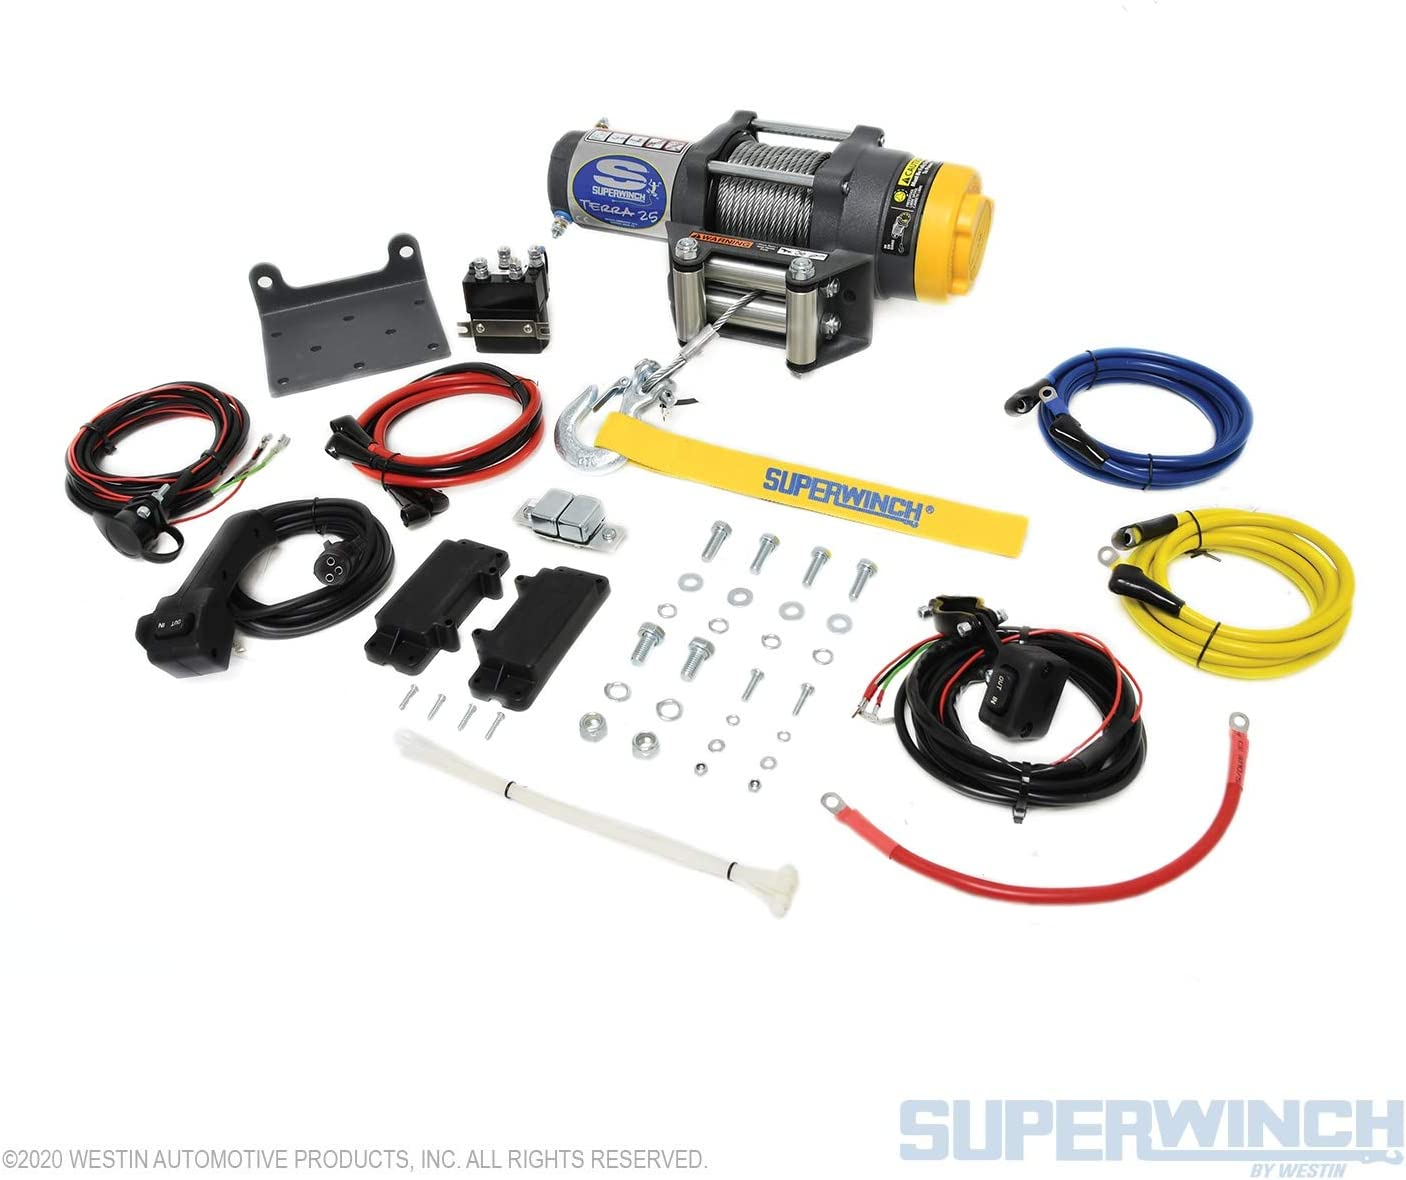 Superwinch A3500 12 volt electric winch kit